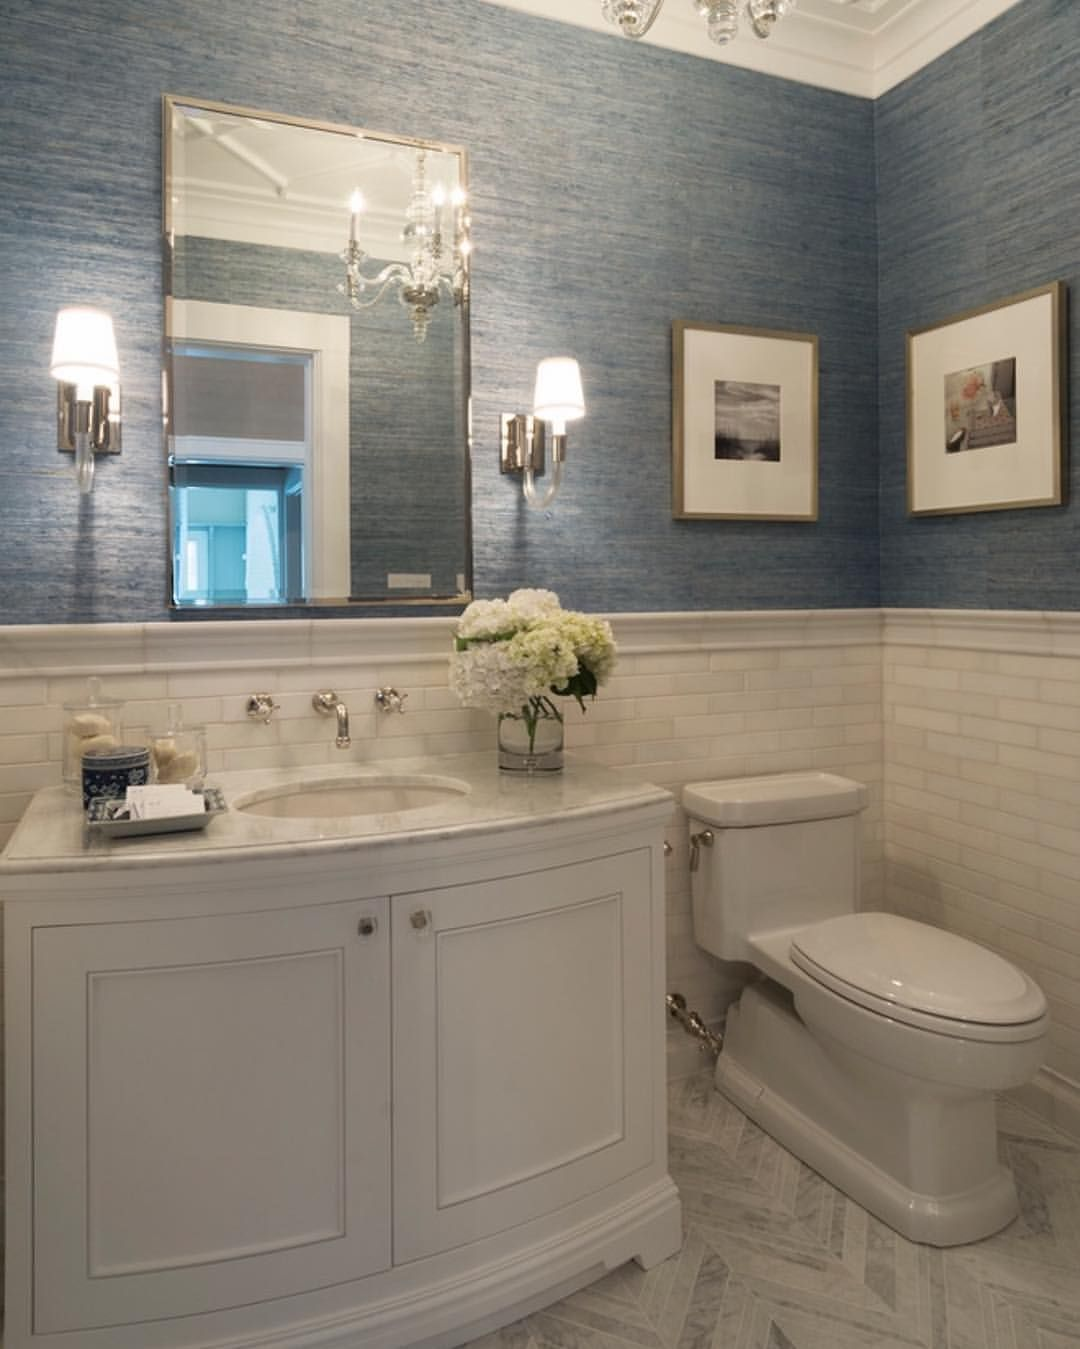 10 beautiful half bathroom ideas for your home small on amazing small bathroom designs and ideas id=68564